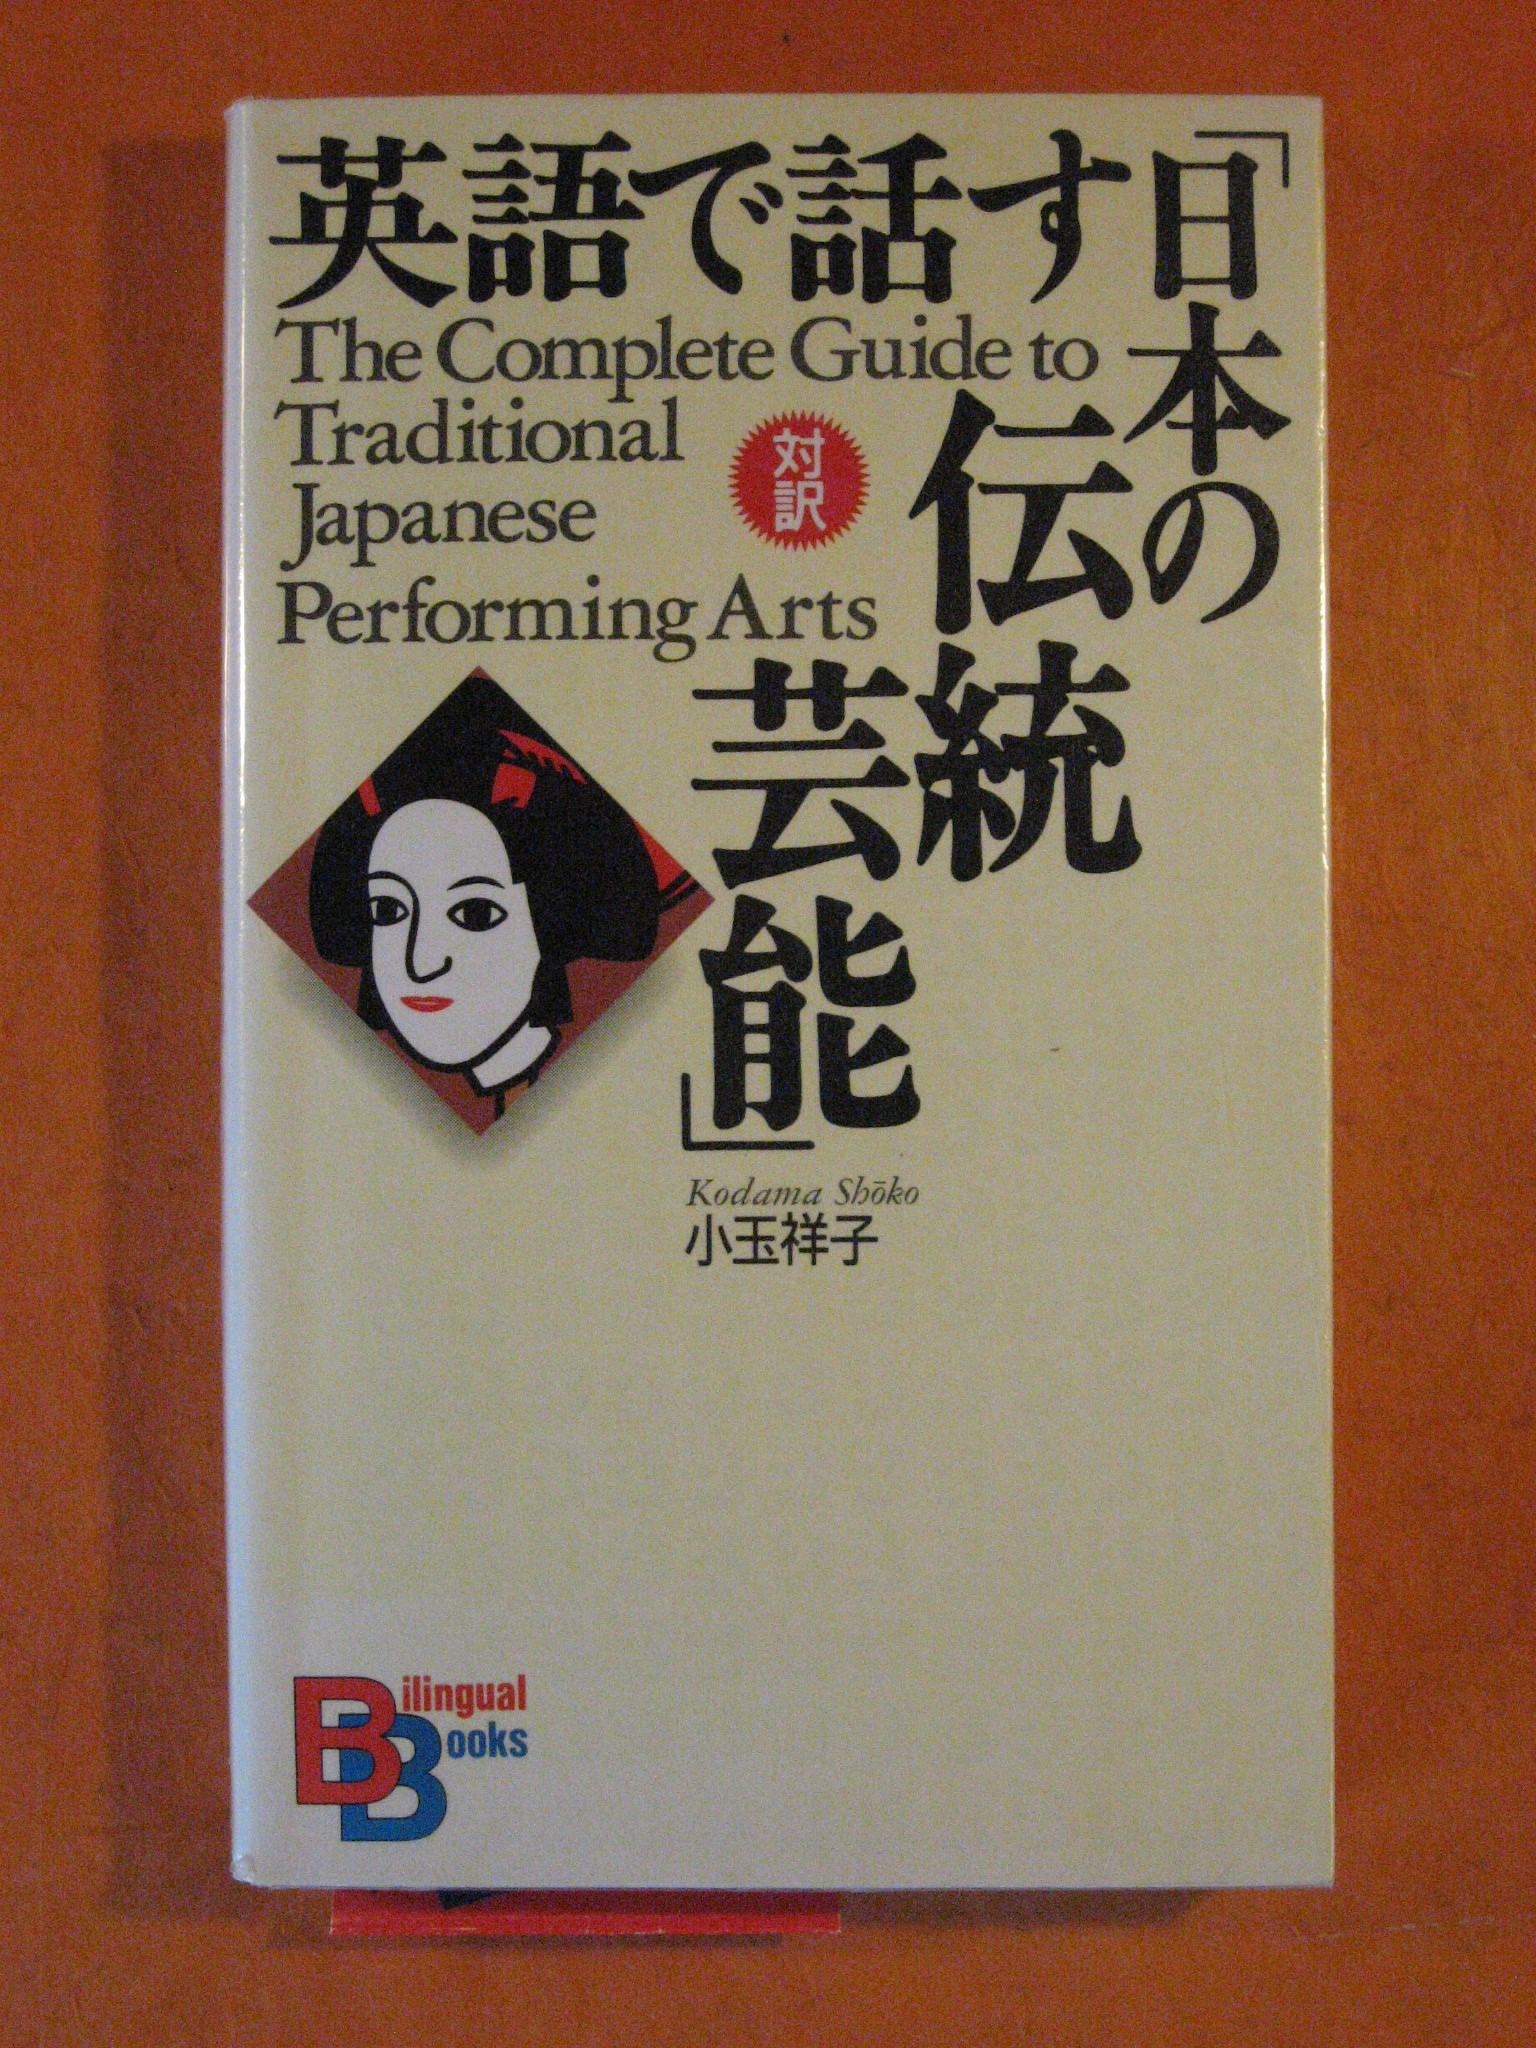 The Complete Guide to Traditional Japanaese Performing Arts (Japanese-English Edition), Kodama Shoko